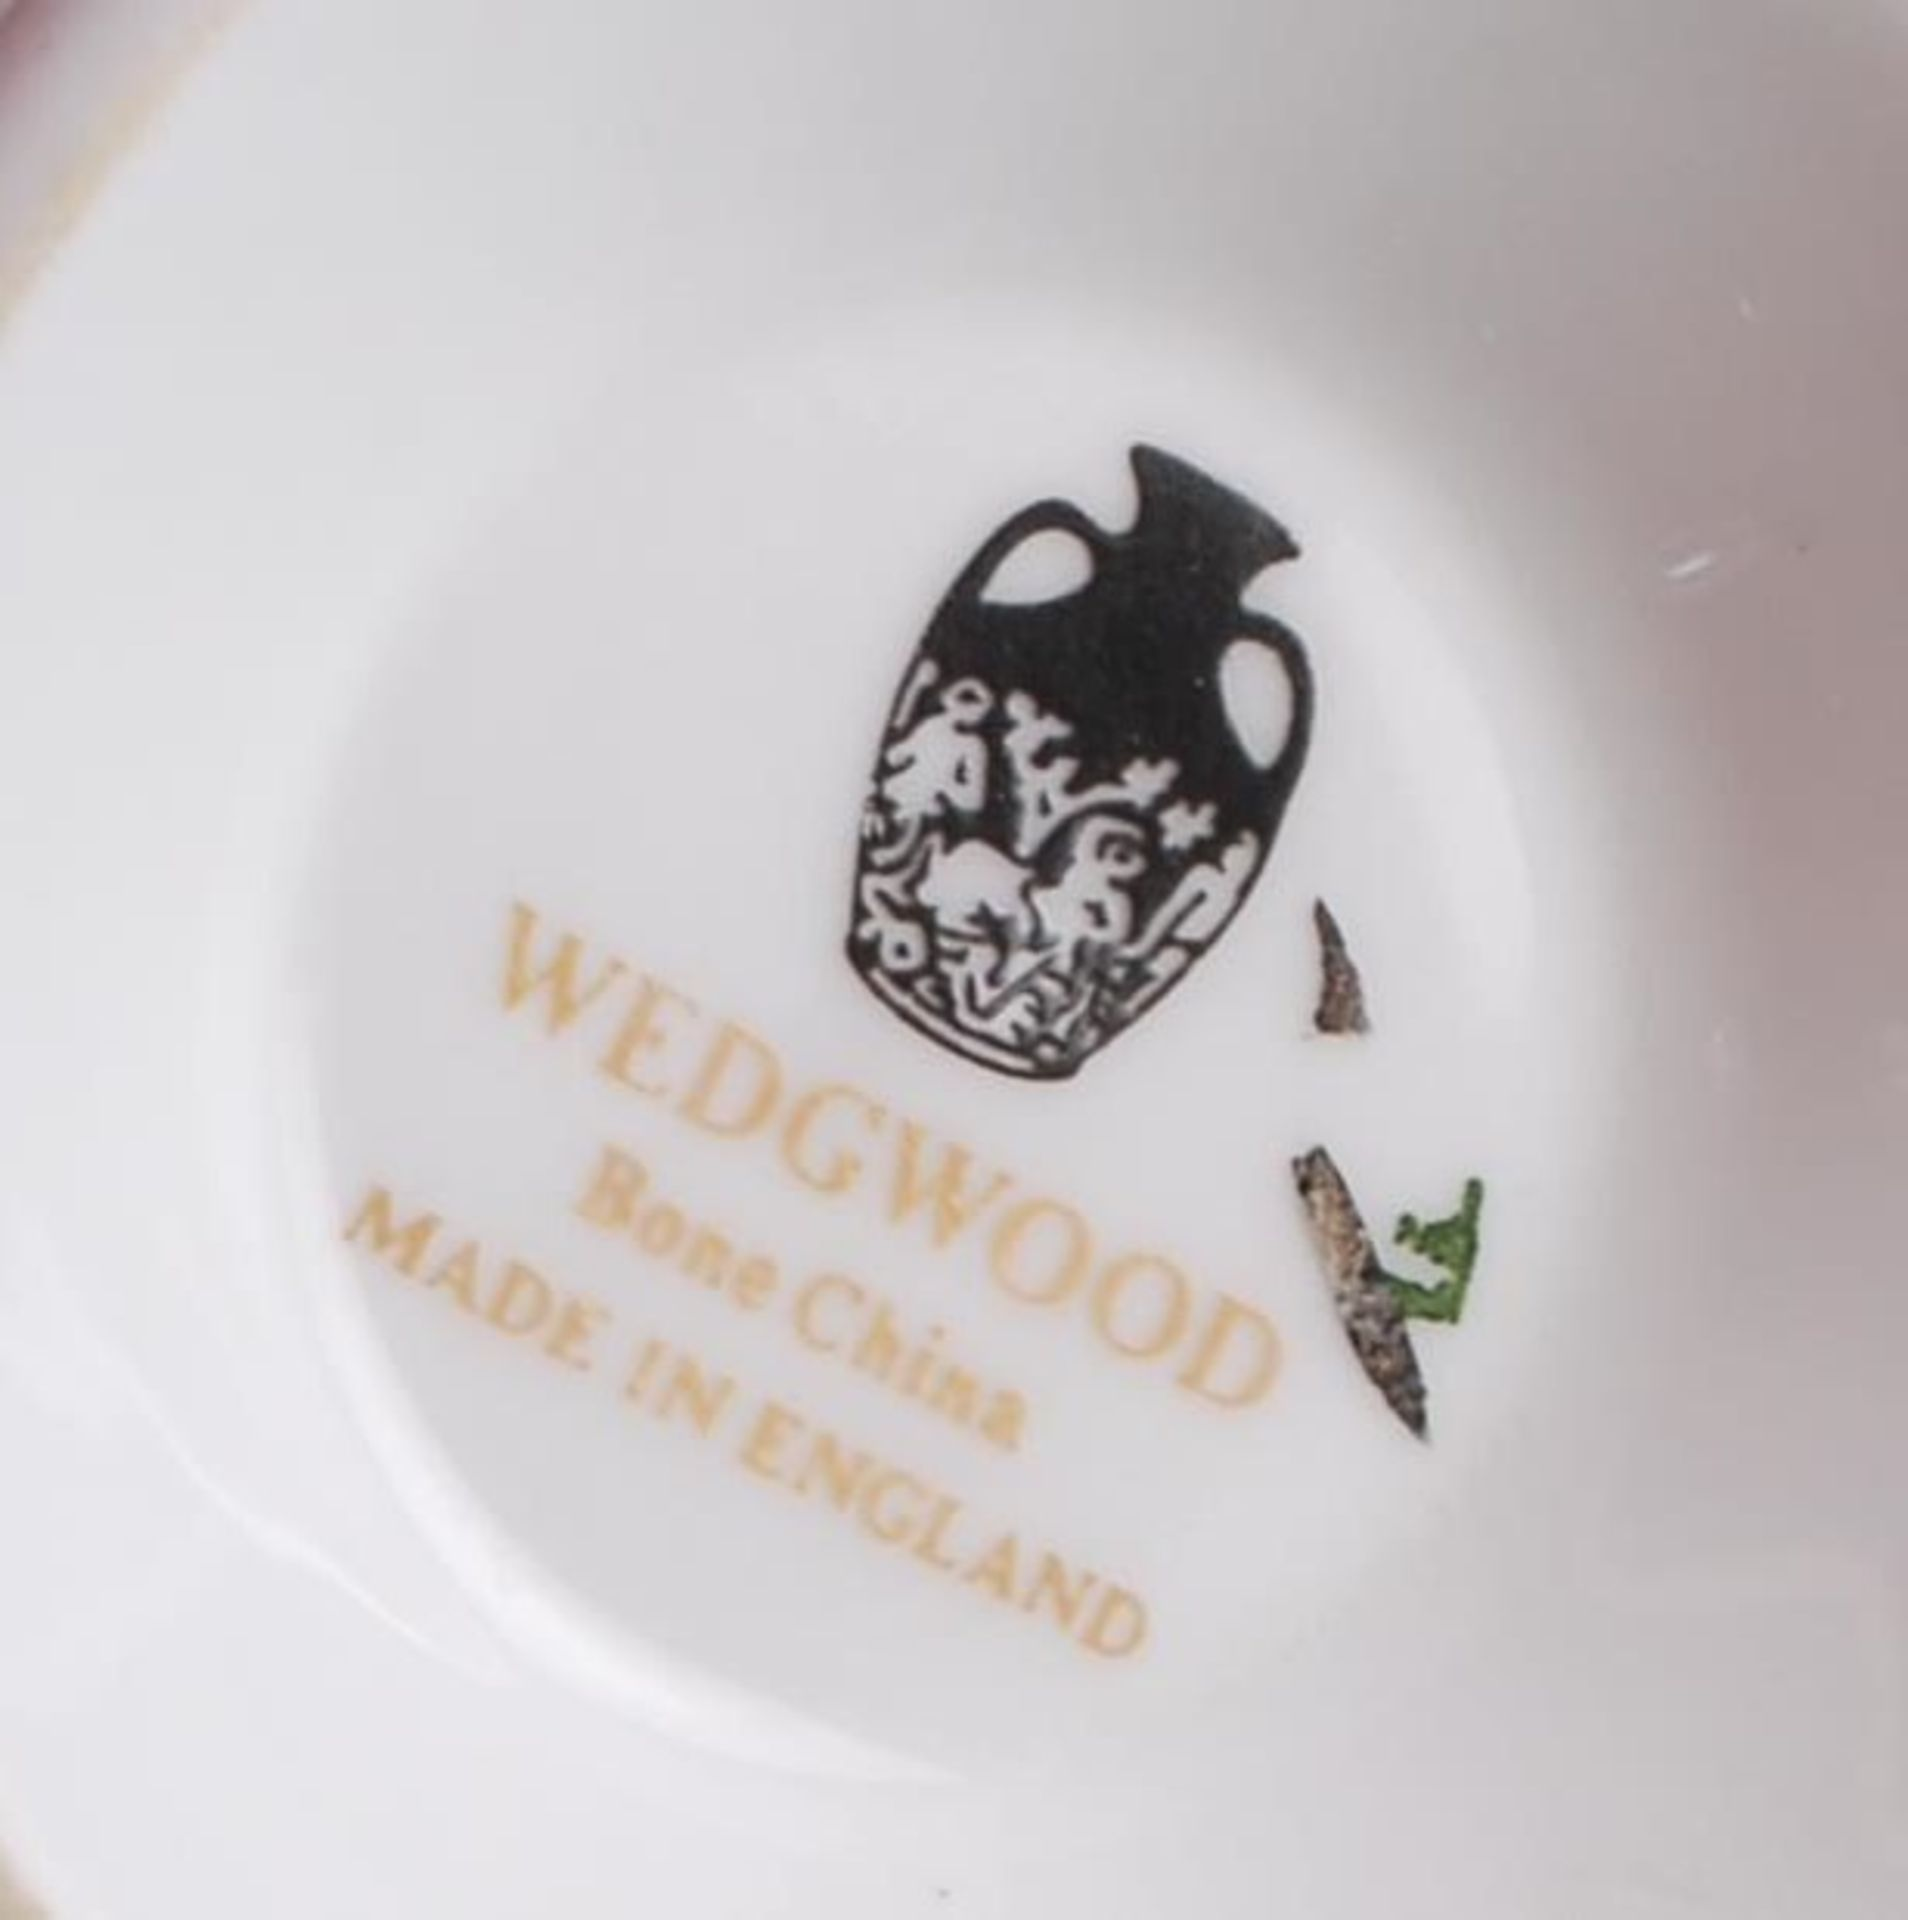 COLLECTION OF LATE 20TH CENTURY WEDGWOOD FINE BONE CHINA - Image 9 of 9